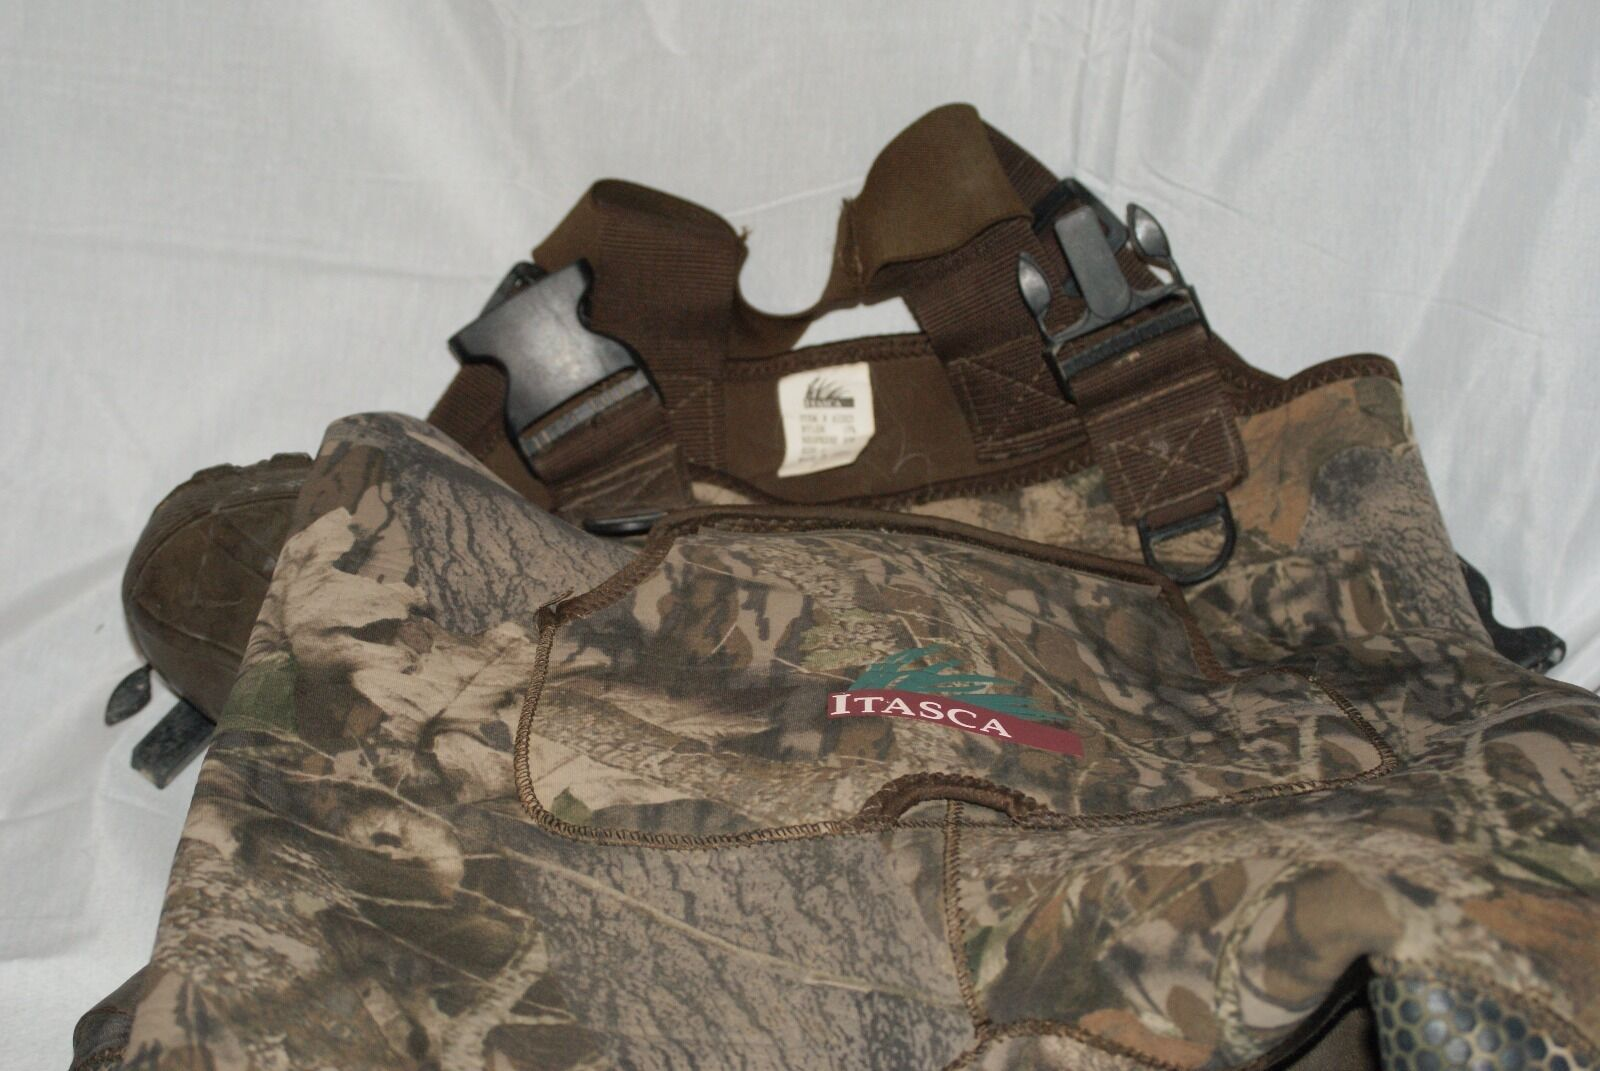 ITASCA RUBBER WADING Stiefel AND OVERRALLS Größe 1 Thinsulate ITEM ITEM ITEM 632025 JUNIOR a64b73